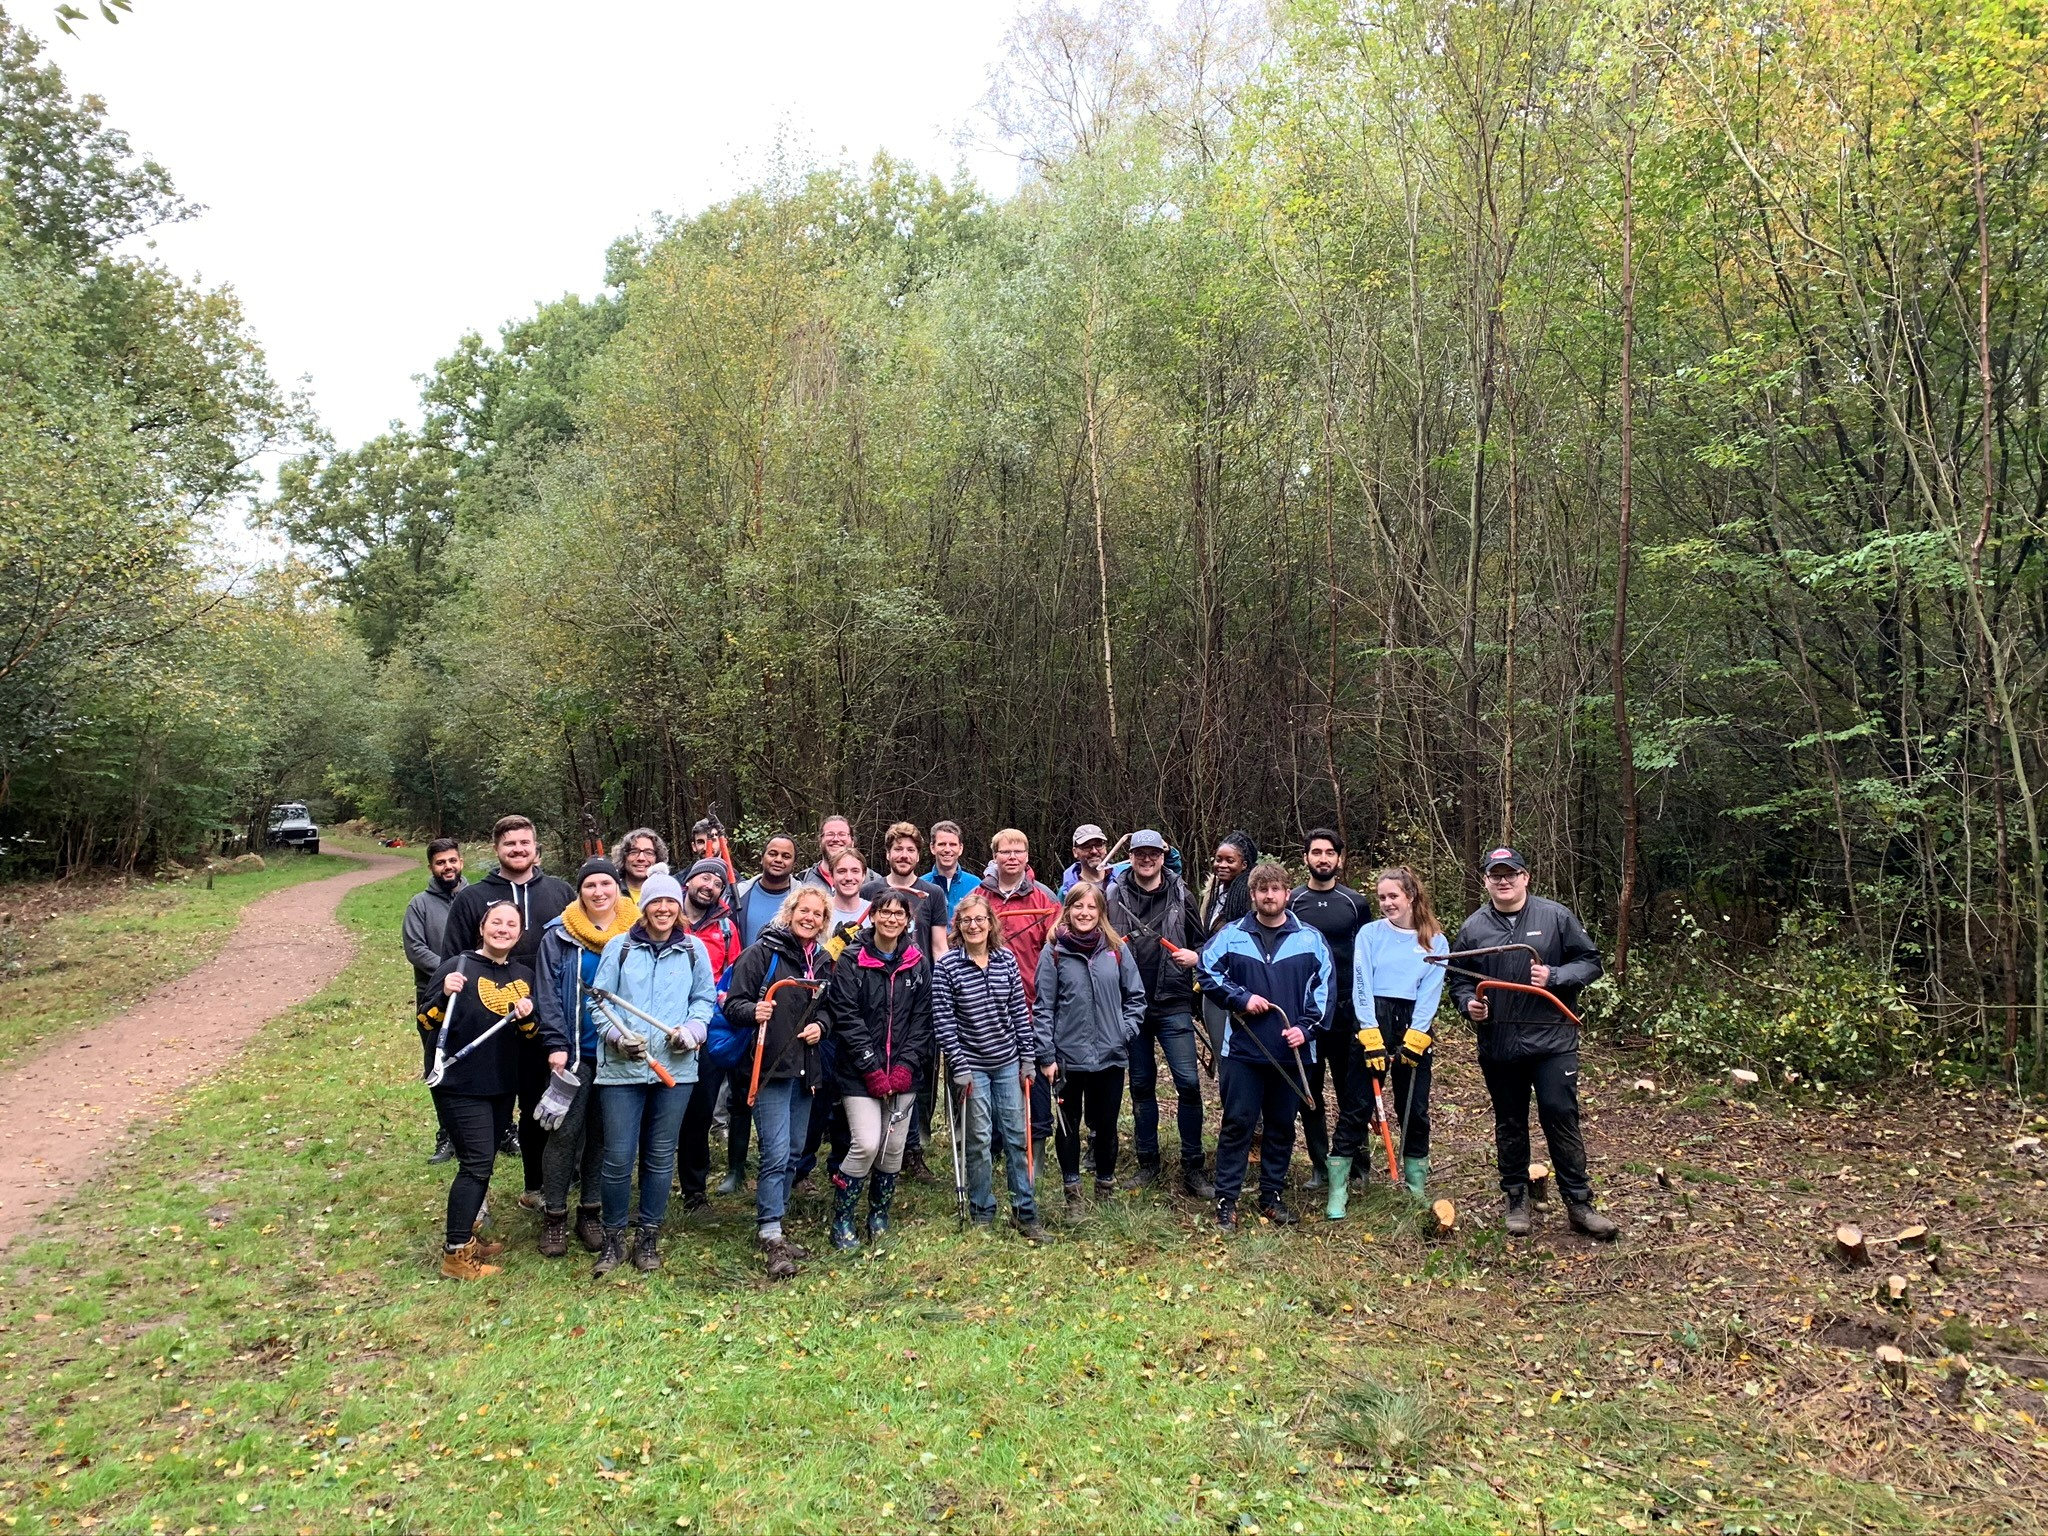 The reallymoving team helps maintain local woodland